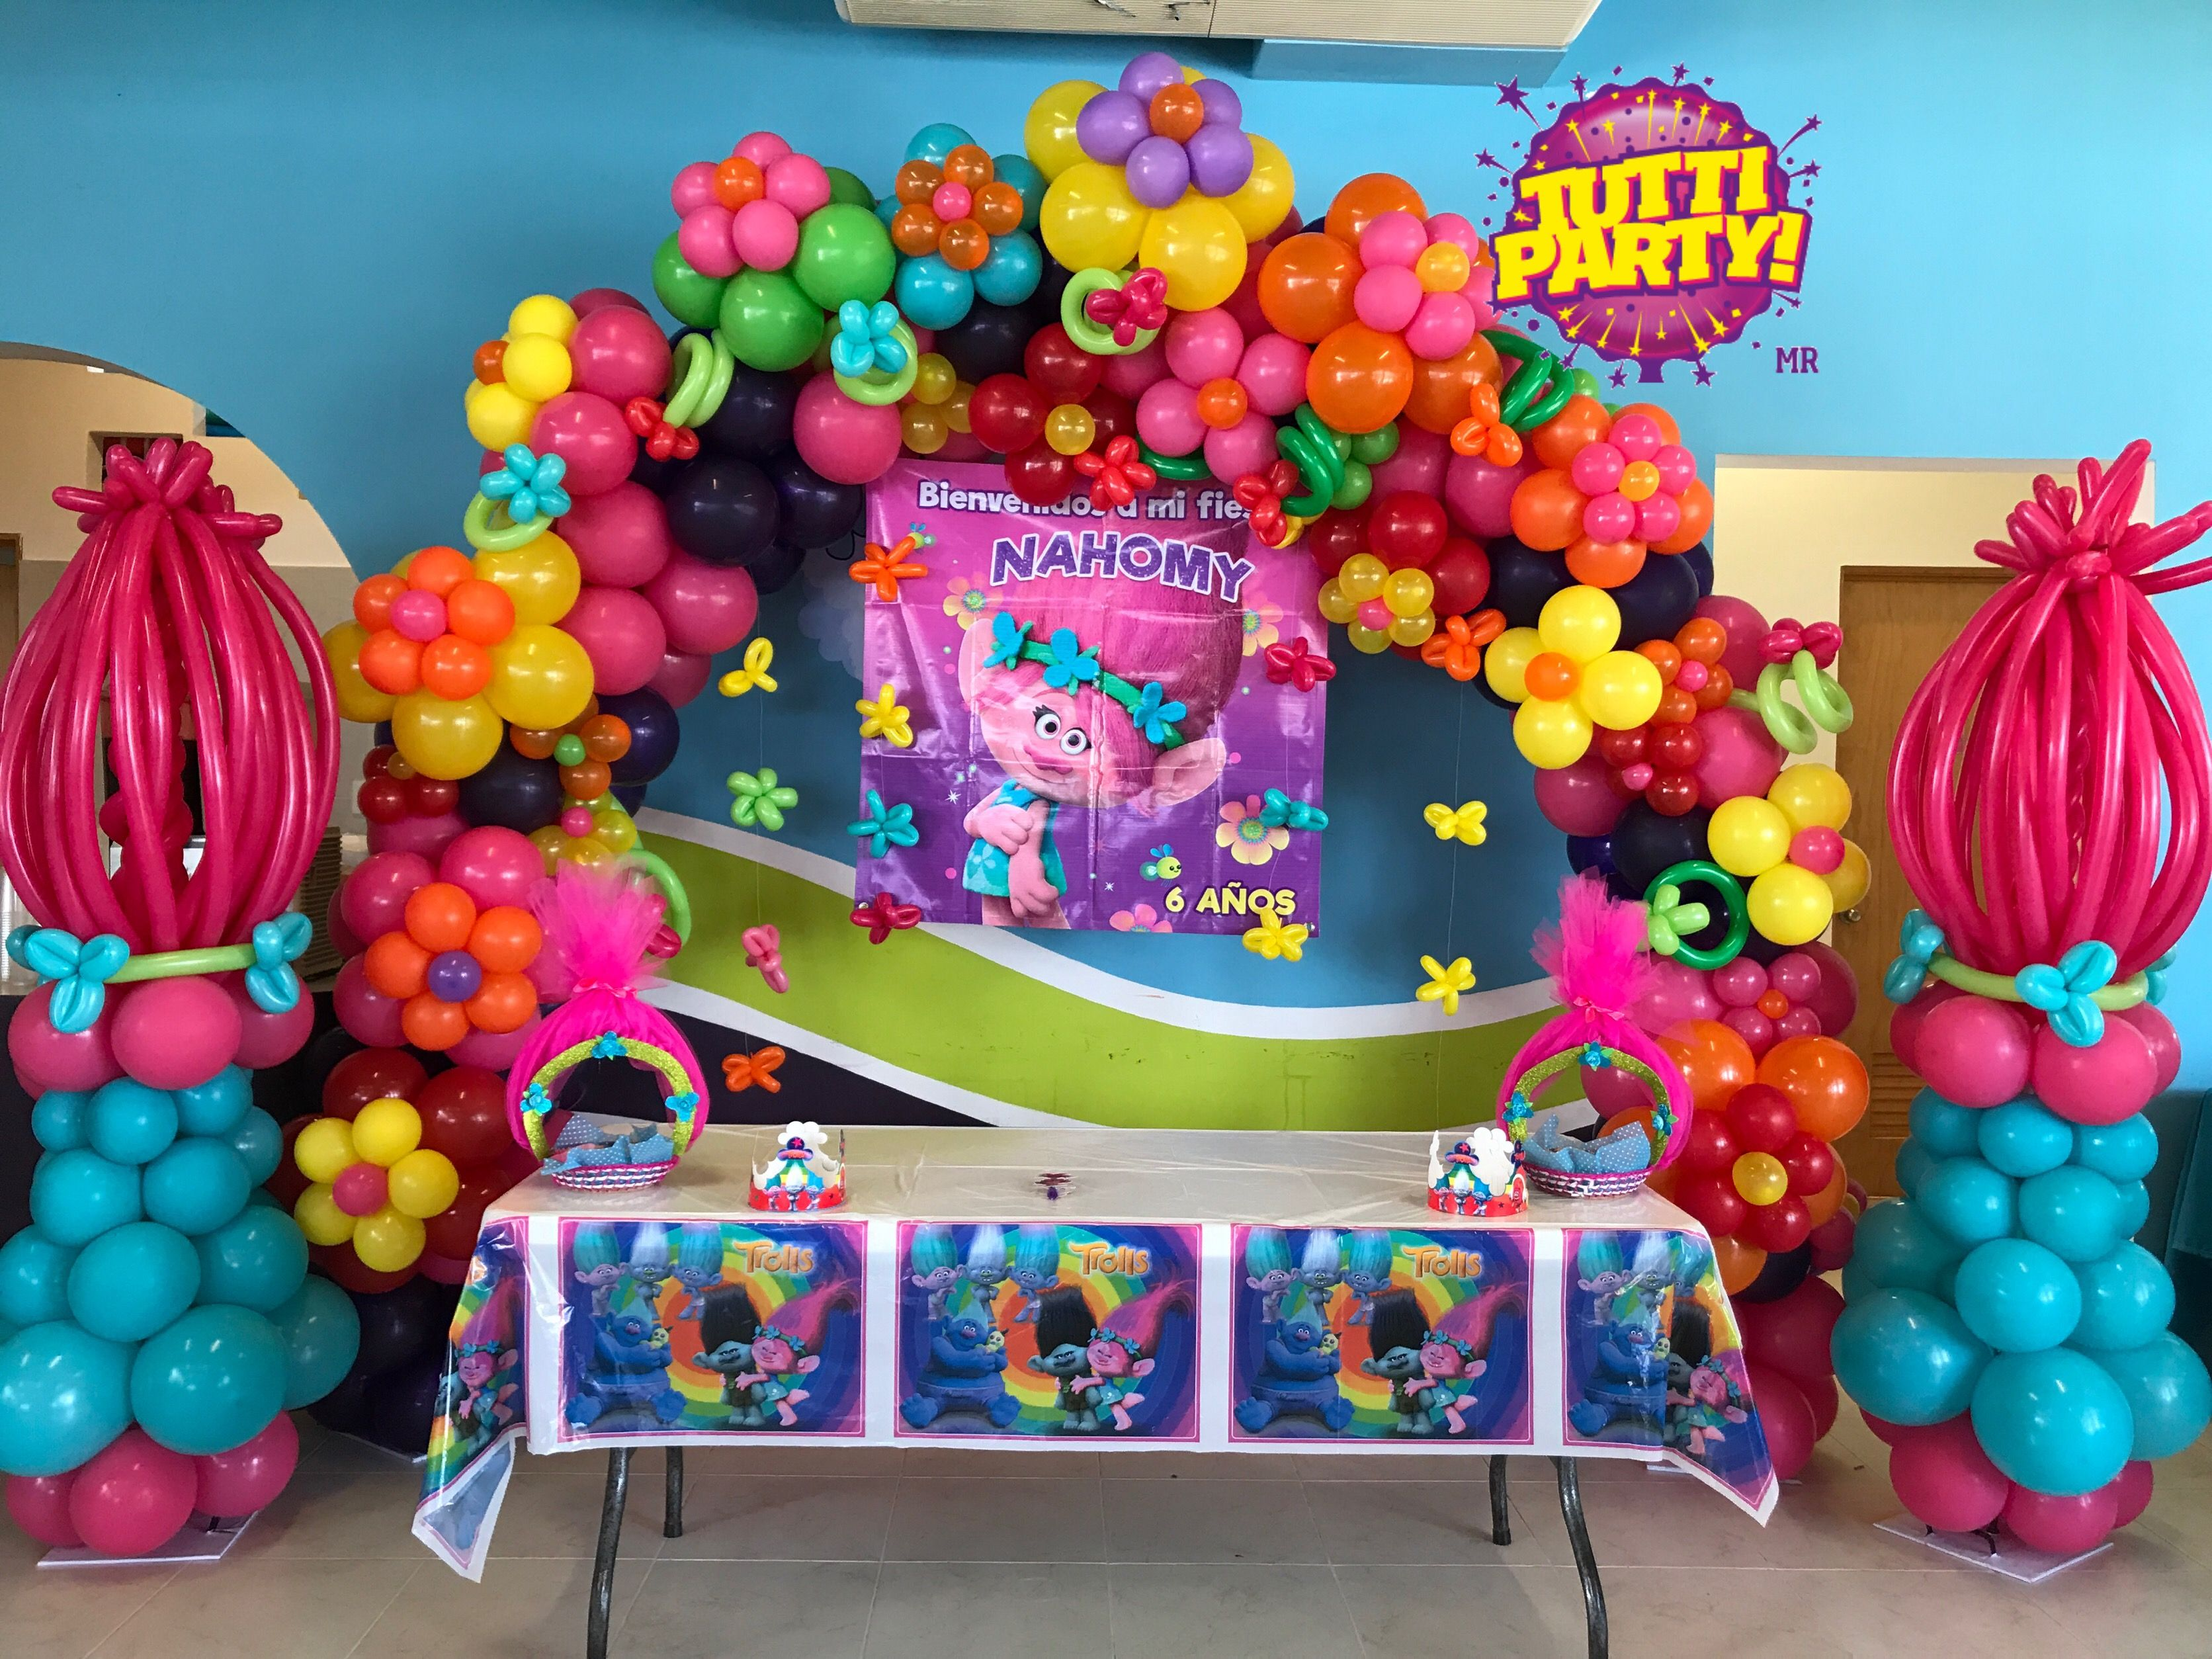 Poppy party Poppy trolls party decorations balloons party ideas lo